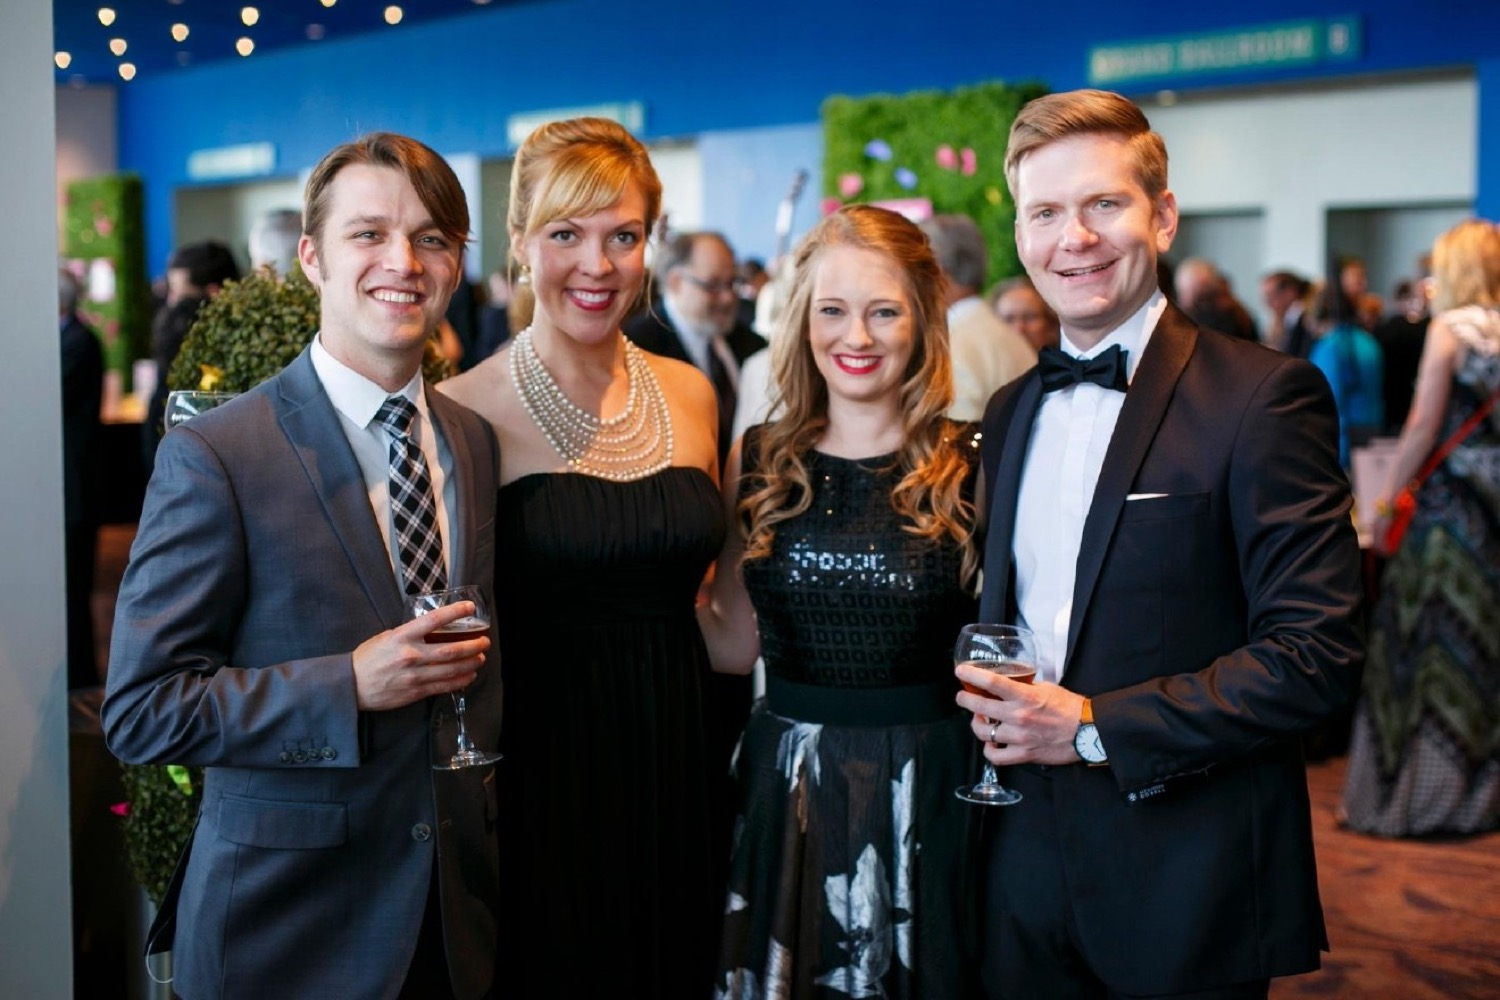 The 2017 JDRF Cincinnatian of the Year Gala is the toast of the town every year, and for good reason. / WHERE: Duke Energy Convention Center / WHEN: May 13, 2017 / Image courtesy of JDRF Southwest Ohio